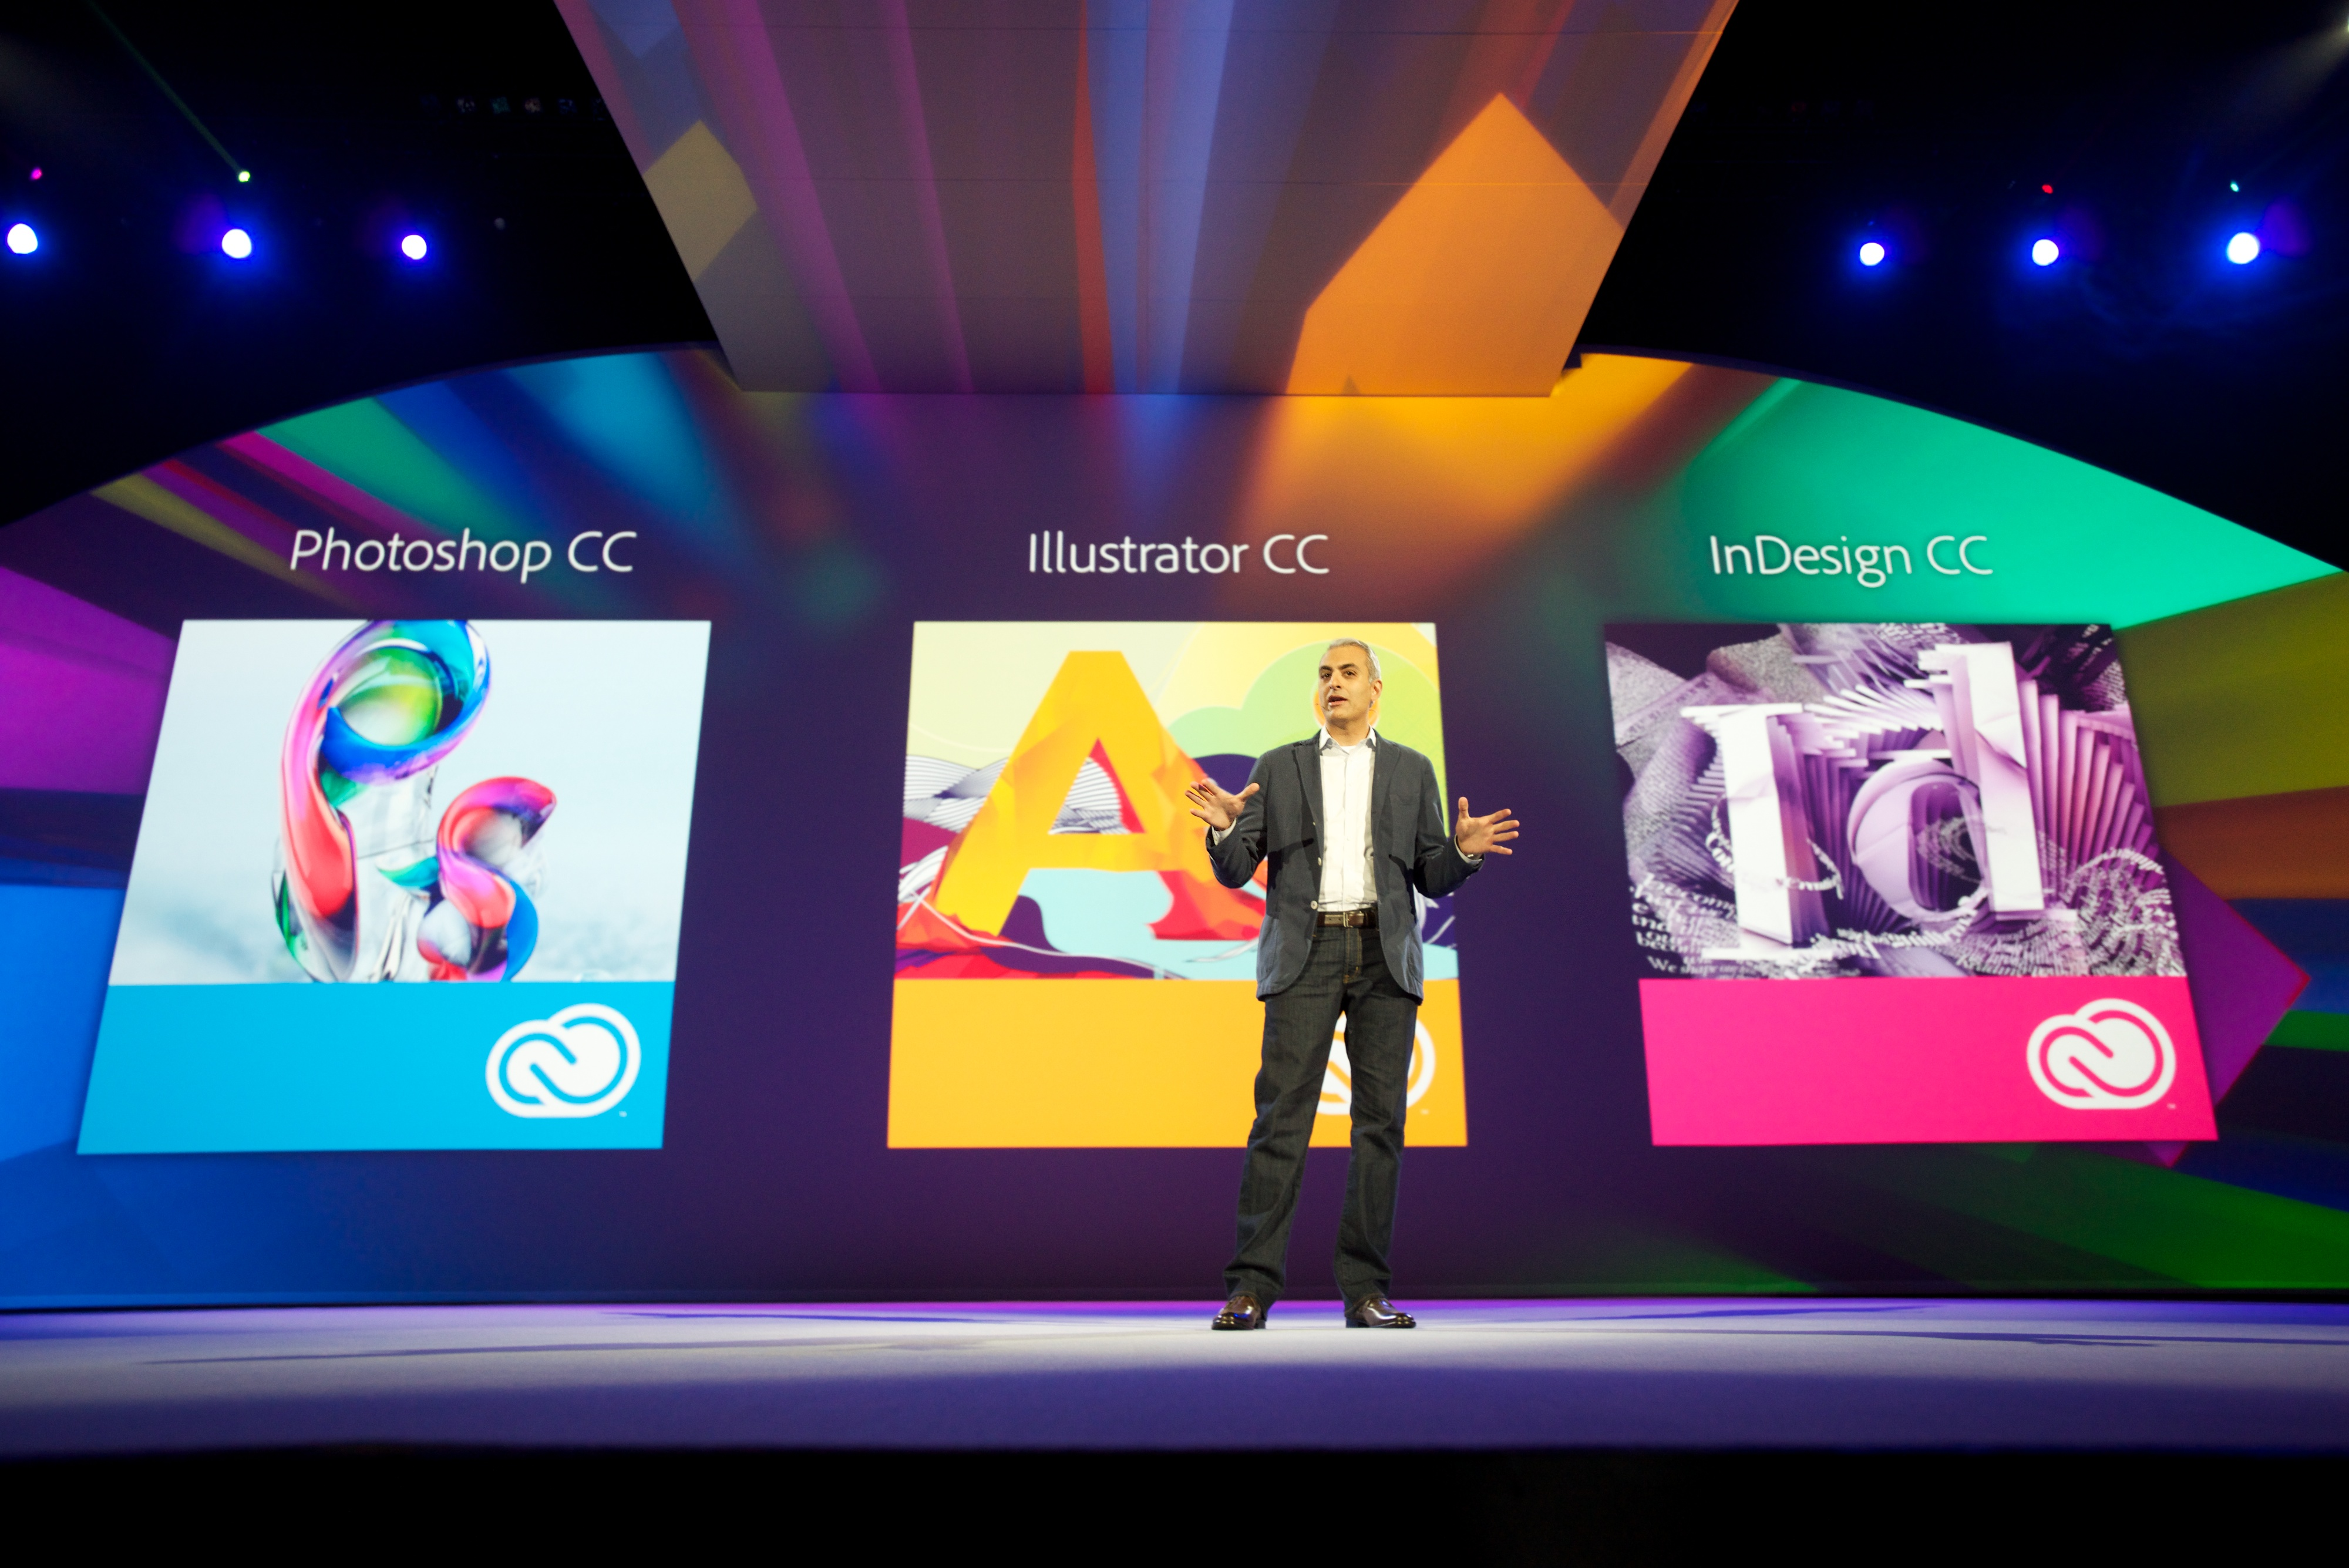 Adobe update to Creative Cloud | iNewsDesign